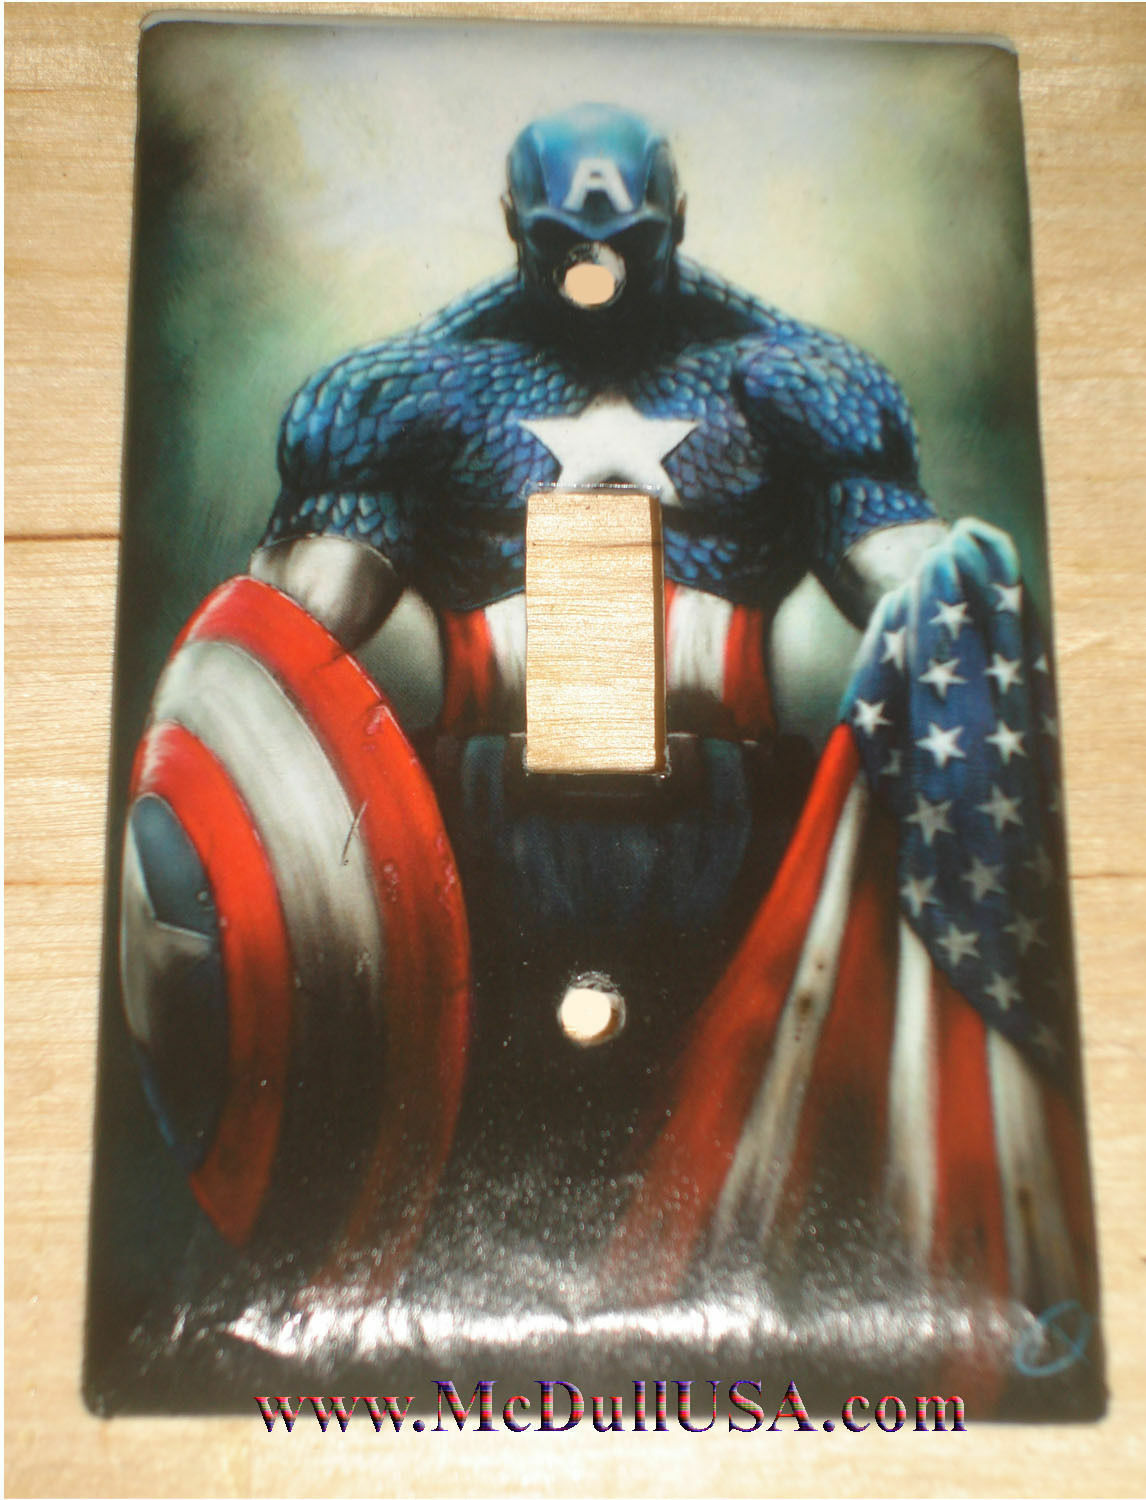 Captain America Light Switch Power Outlet Single Double Wall Cover Plate decor